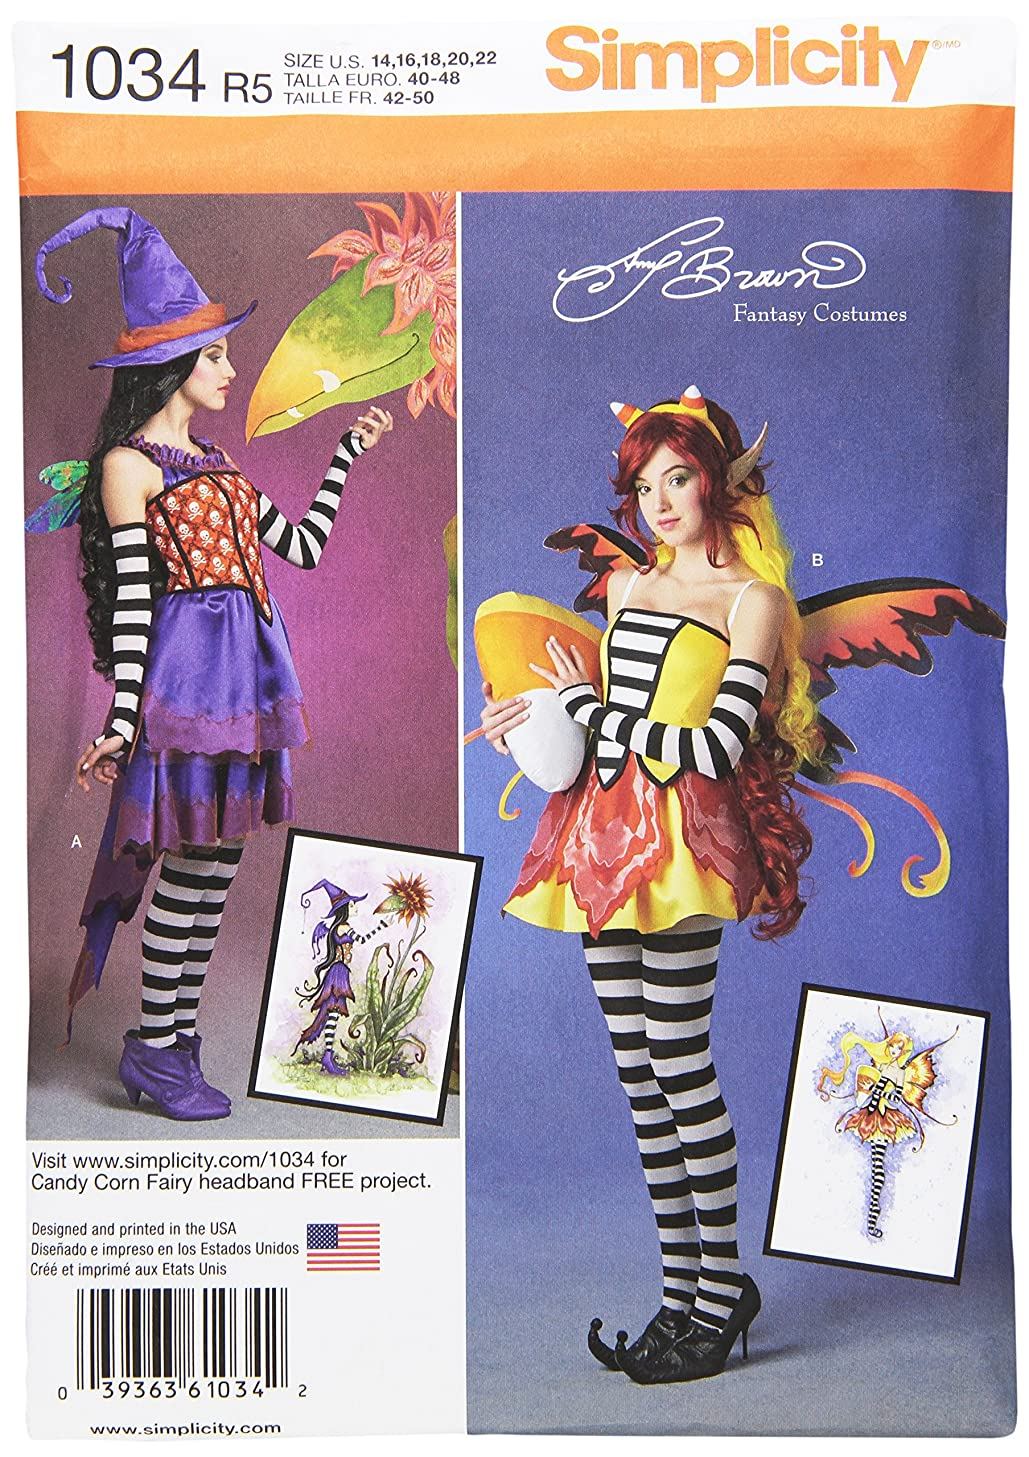 Simplicity Creative Patterns US1034R5 Misses Amy Brown Fairy Costumes, Size R5 (14-16-18-20-22)